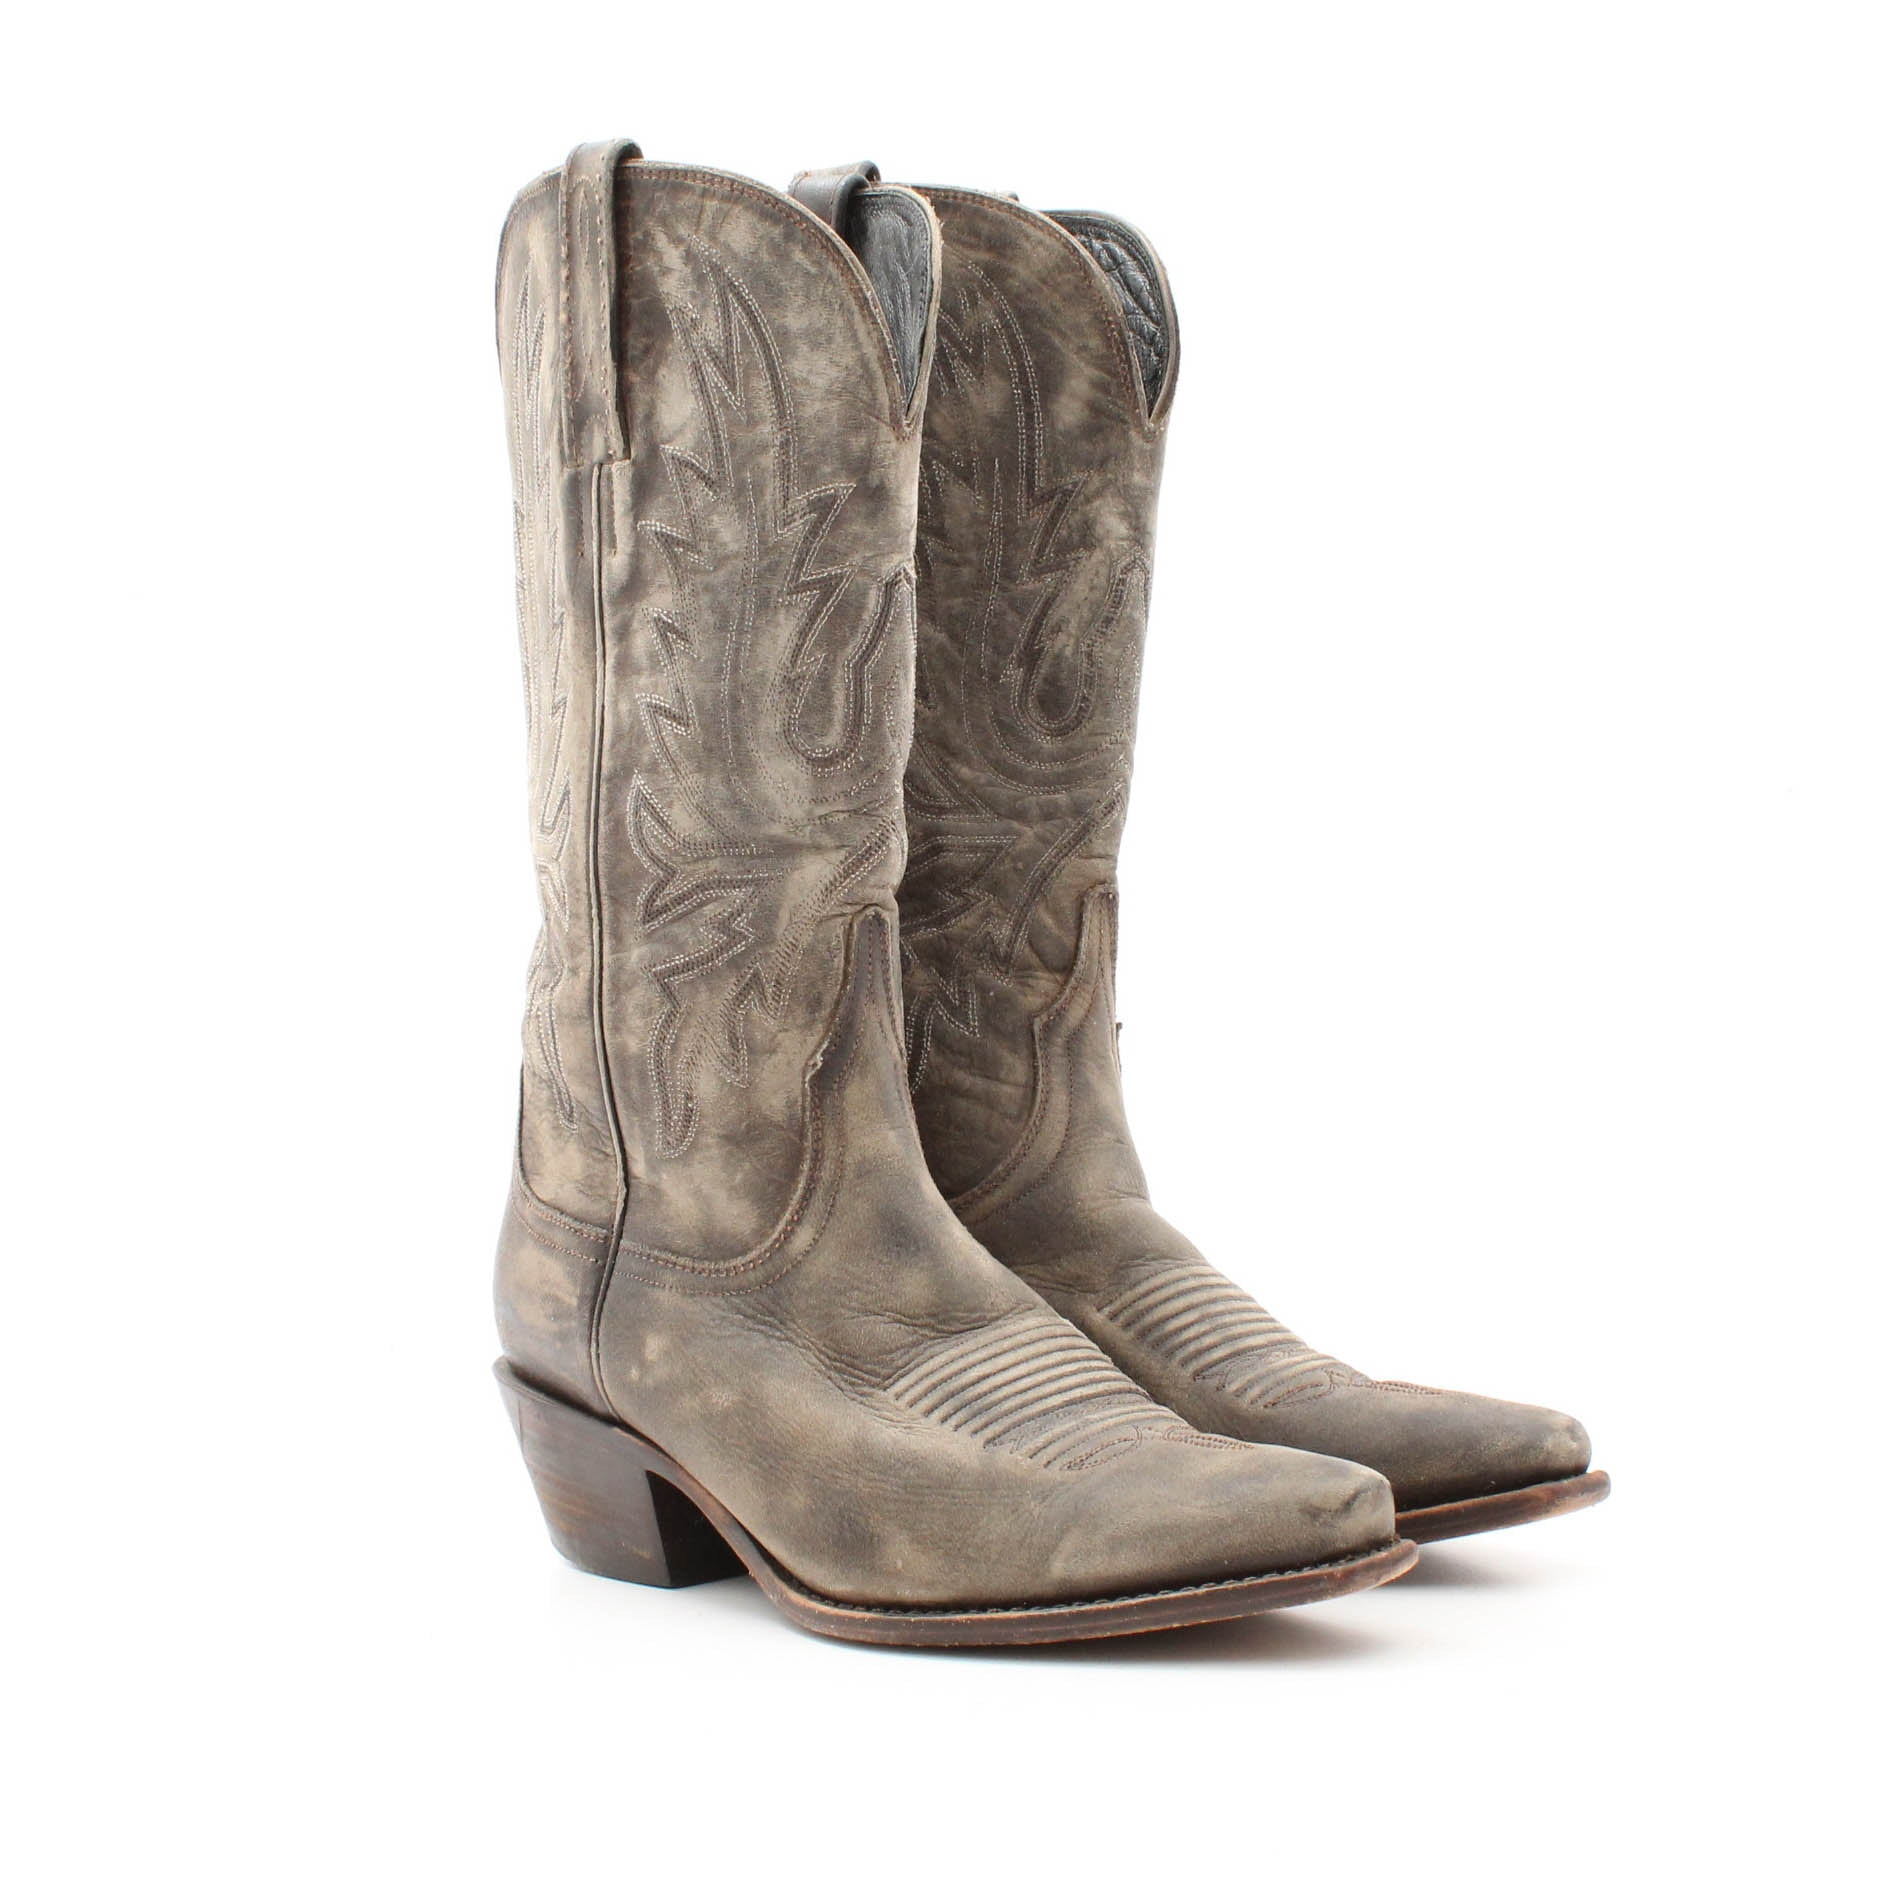 Brazilian Artisan Handcrafted Cowboy Boots From Charlie Horse